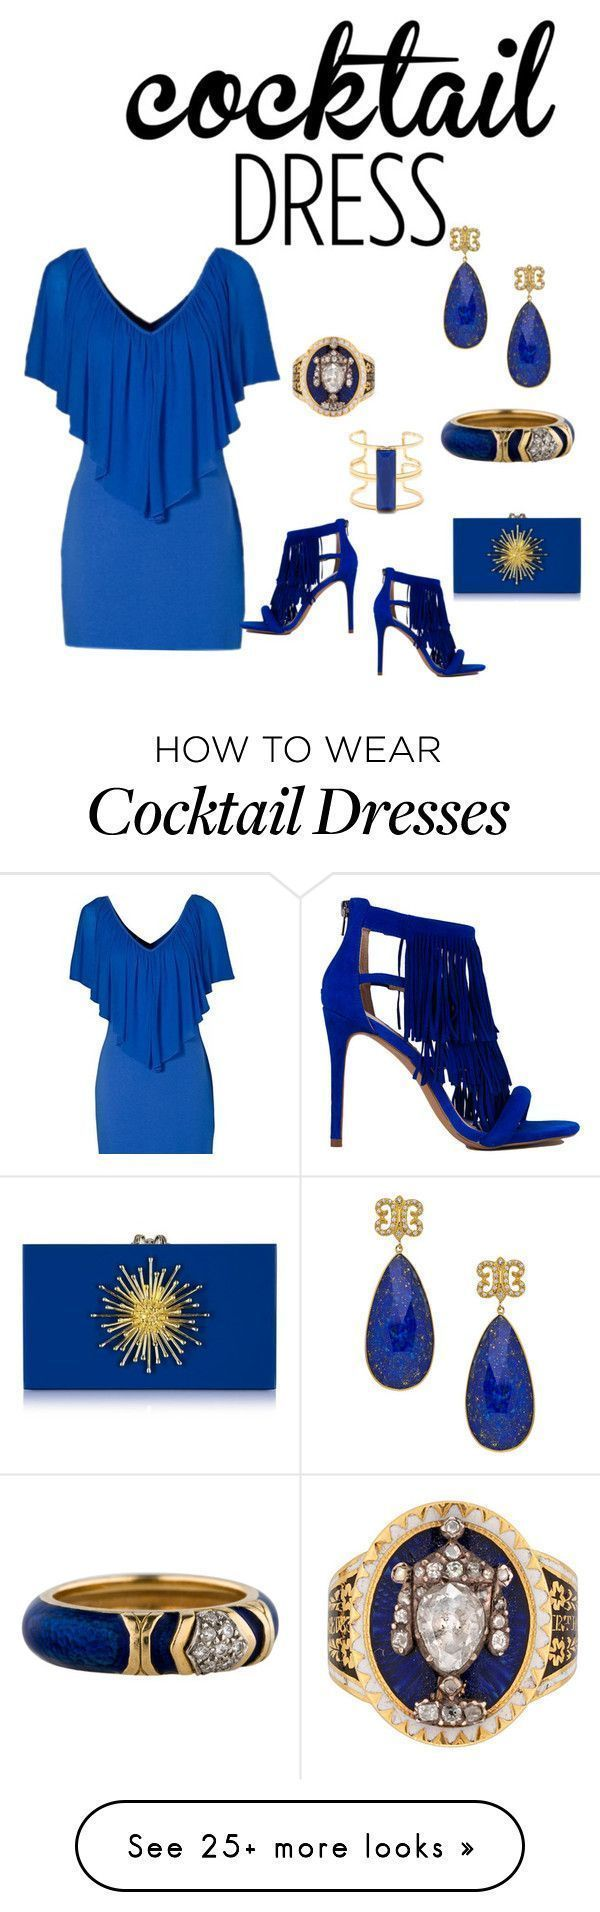 """""""Drinks on him"""" by lisaaucointarantino on Polyvore featuring Steve Madden, Charlotte Olympia and KiraKira #charlotteolympiaheelsoutfit #charlotteolympiaheelsdresses"""